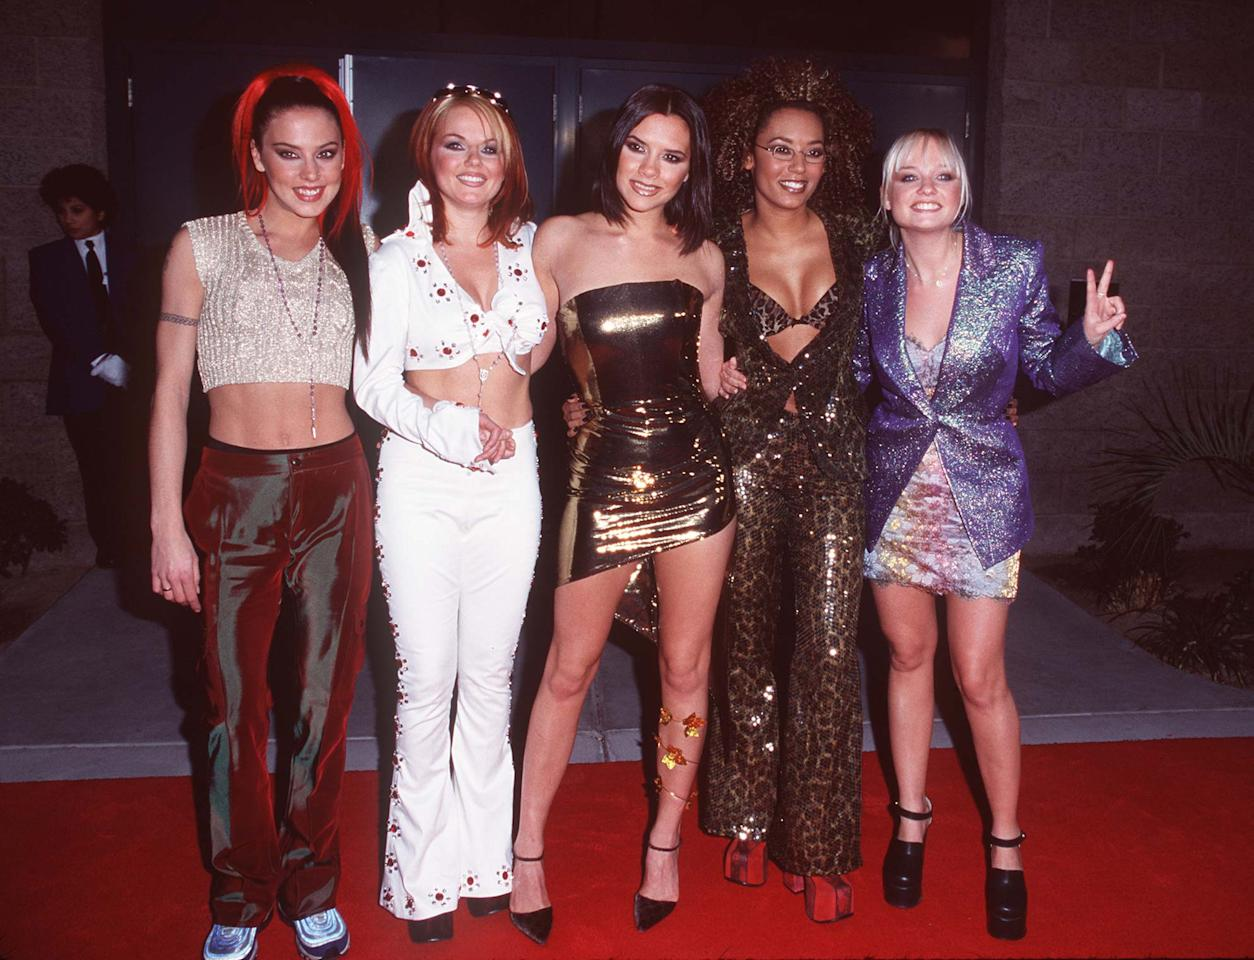 Posh Spice wasn't invited for Spice Girls reunion